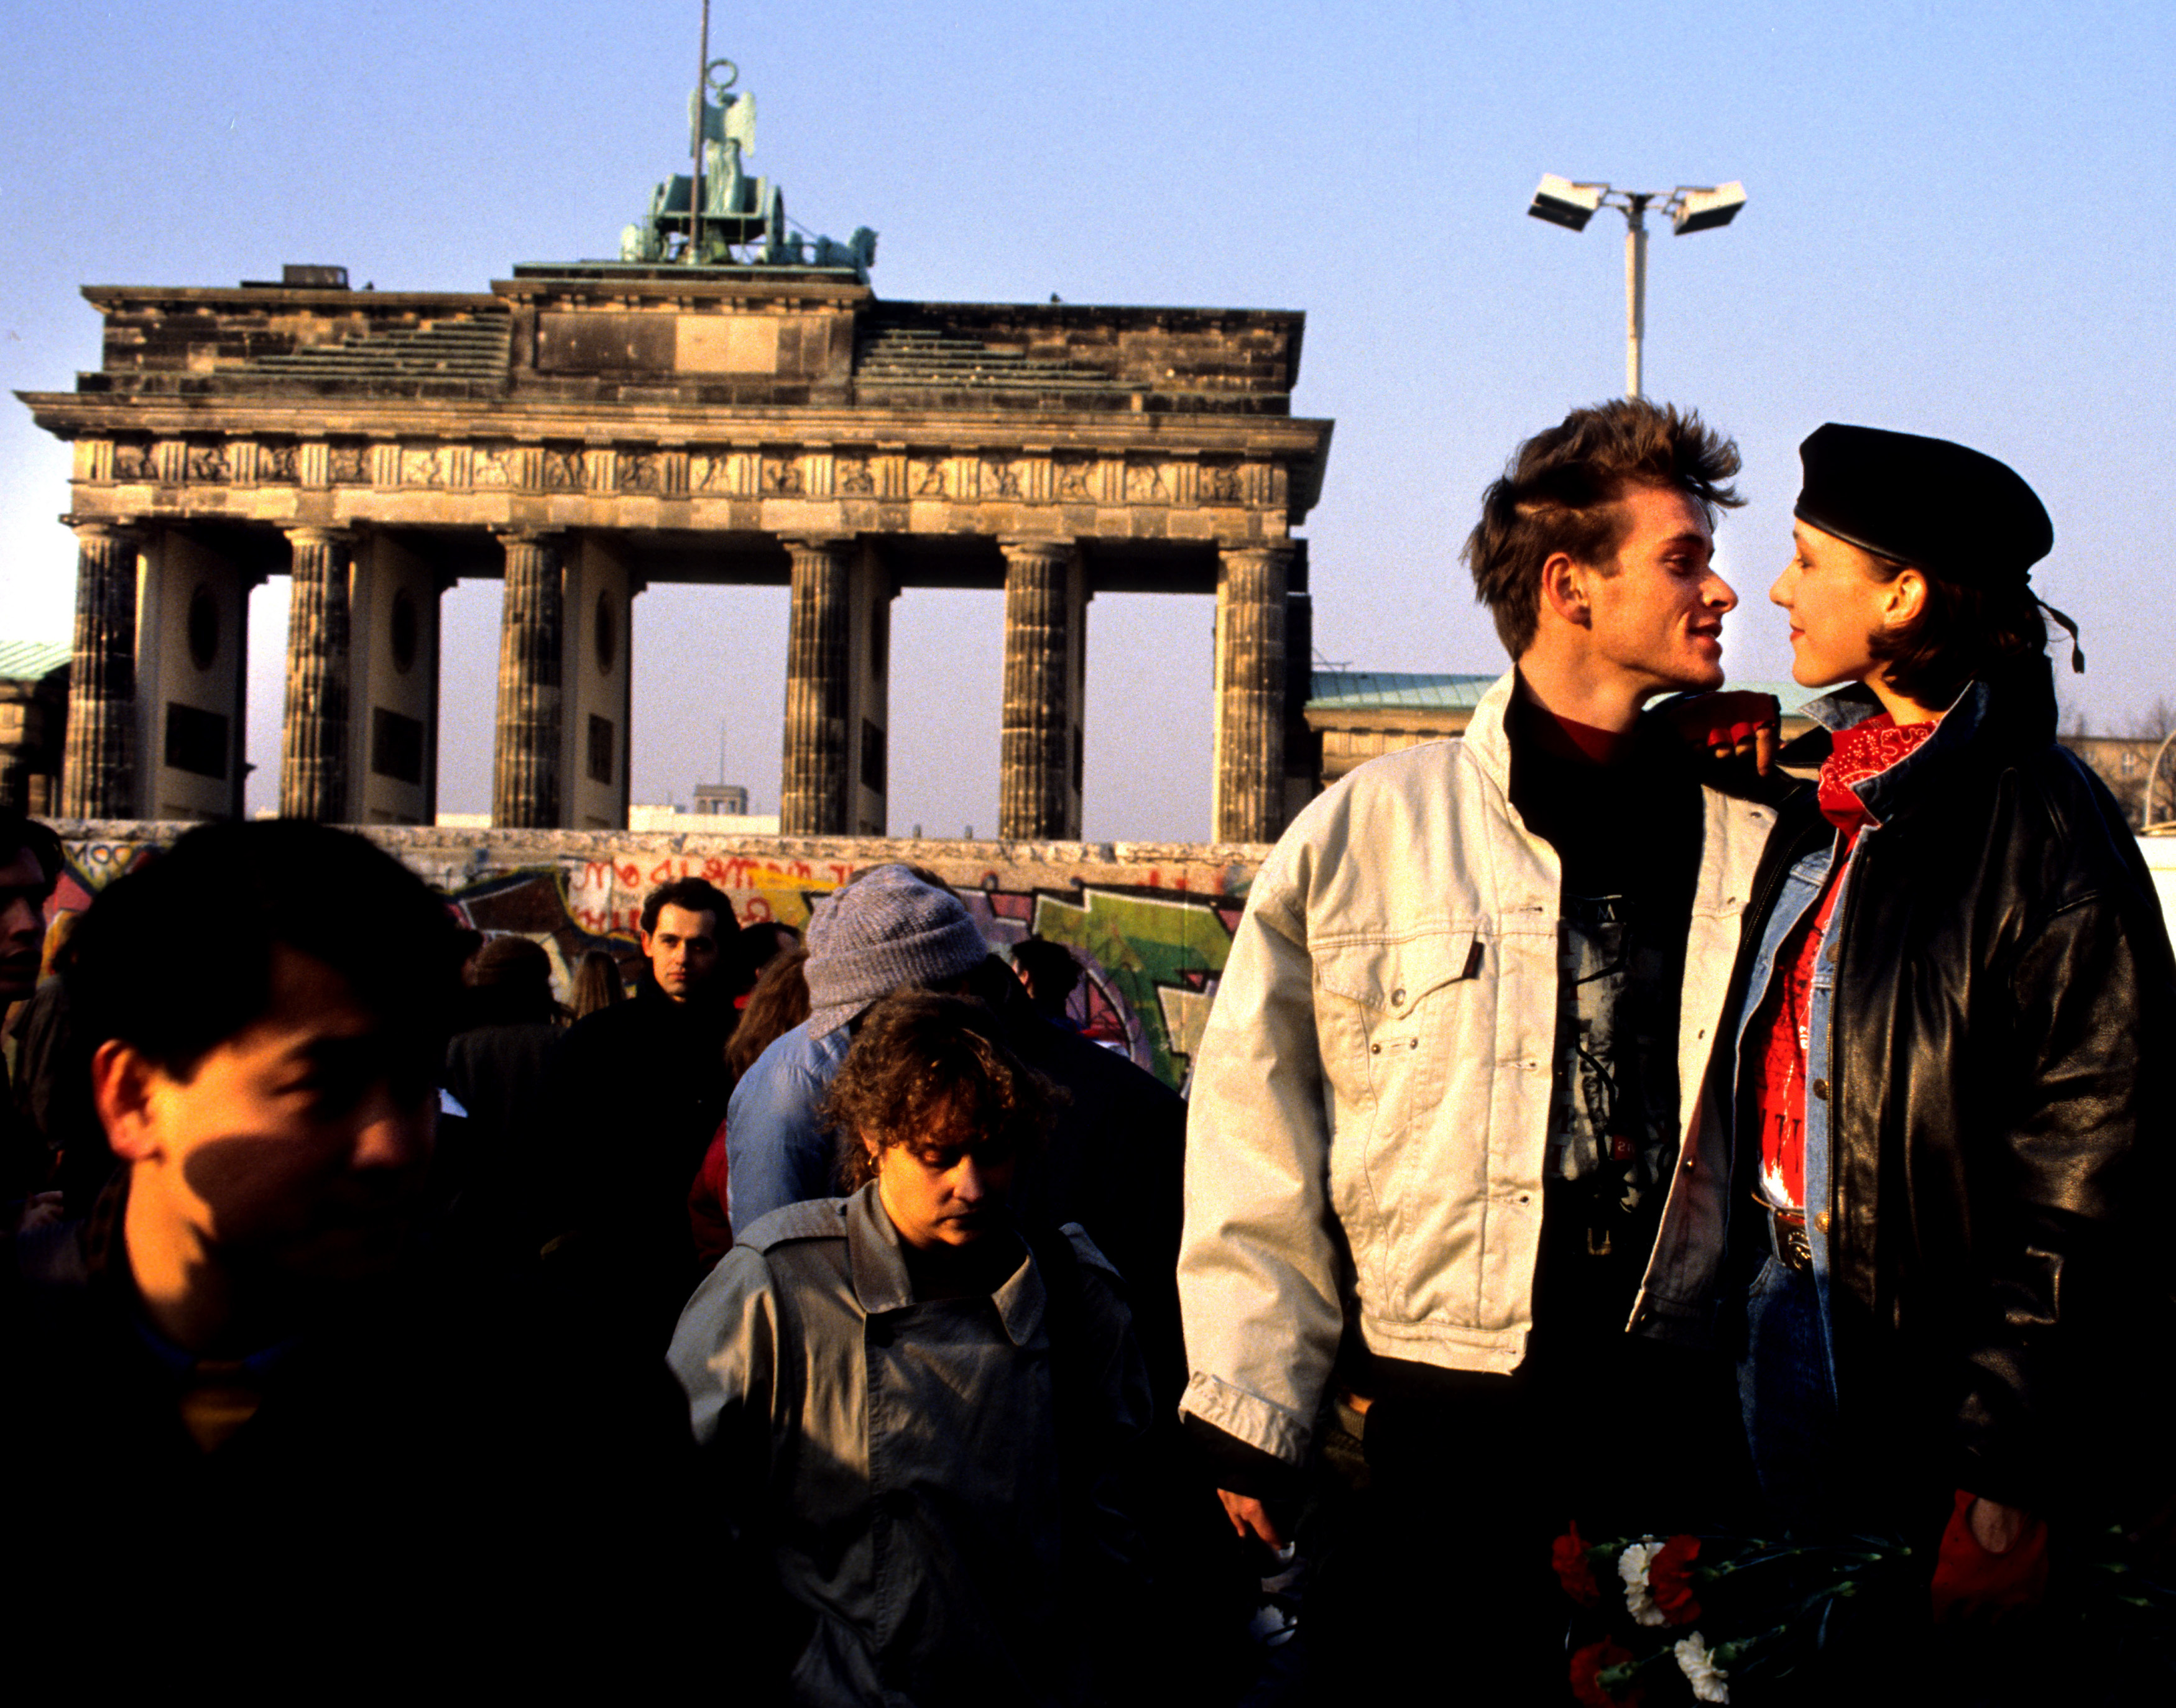 Germany Berlin the Wall Dismantled November 1989 people Berlin the Wall The Brandenburg Gate Tor Germany